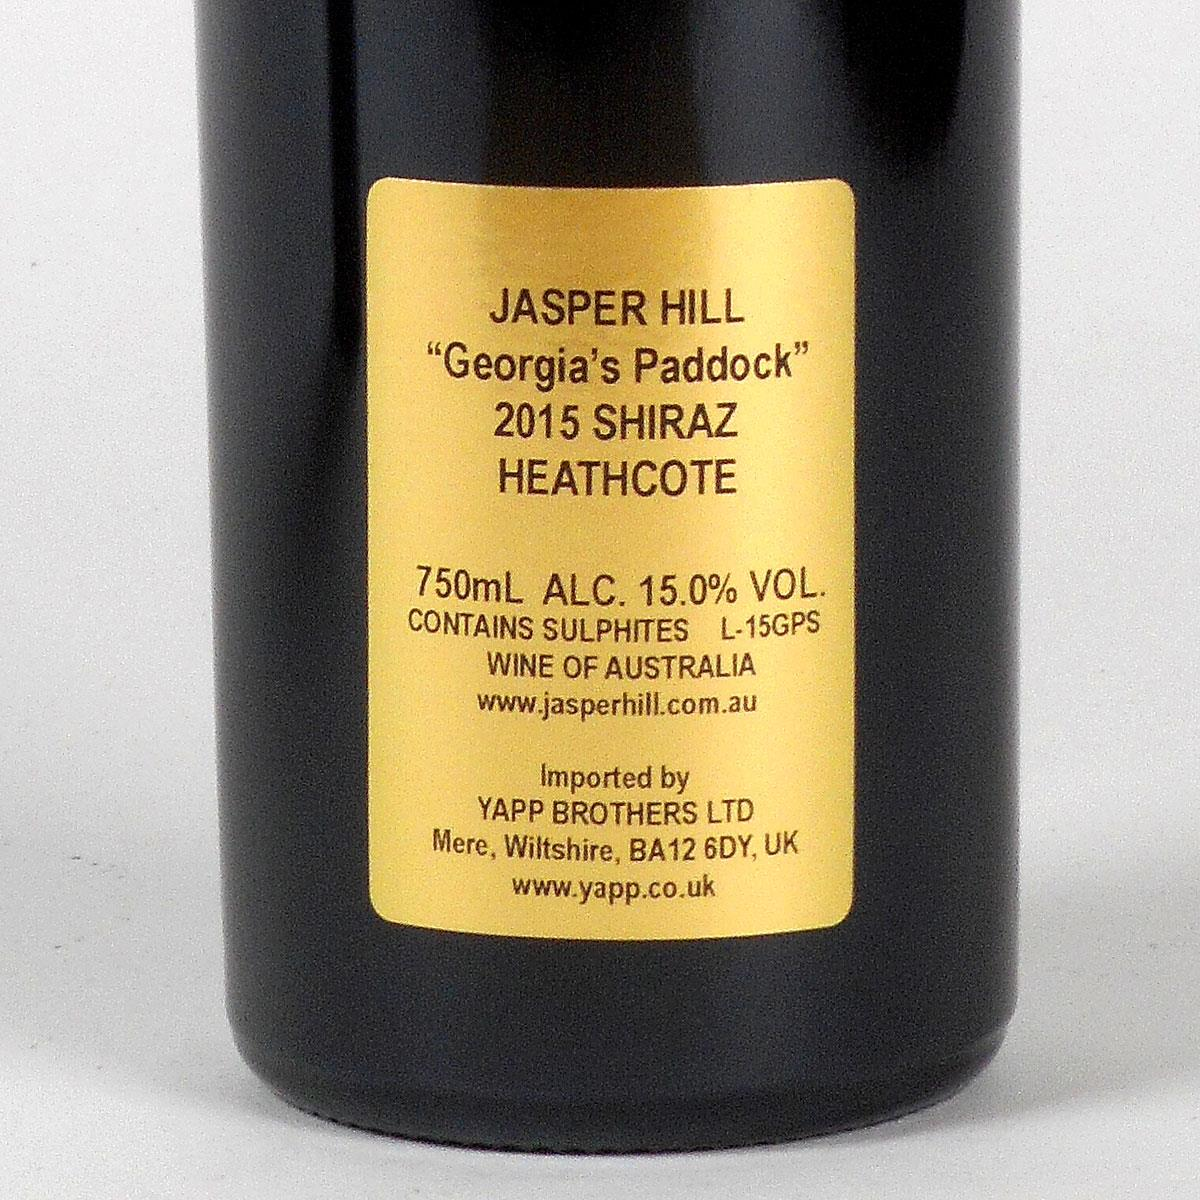 Jasper Hill: Georgia's Paddock Shiraz 2015 - Bottle Rear Label